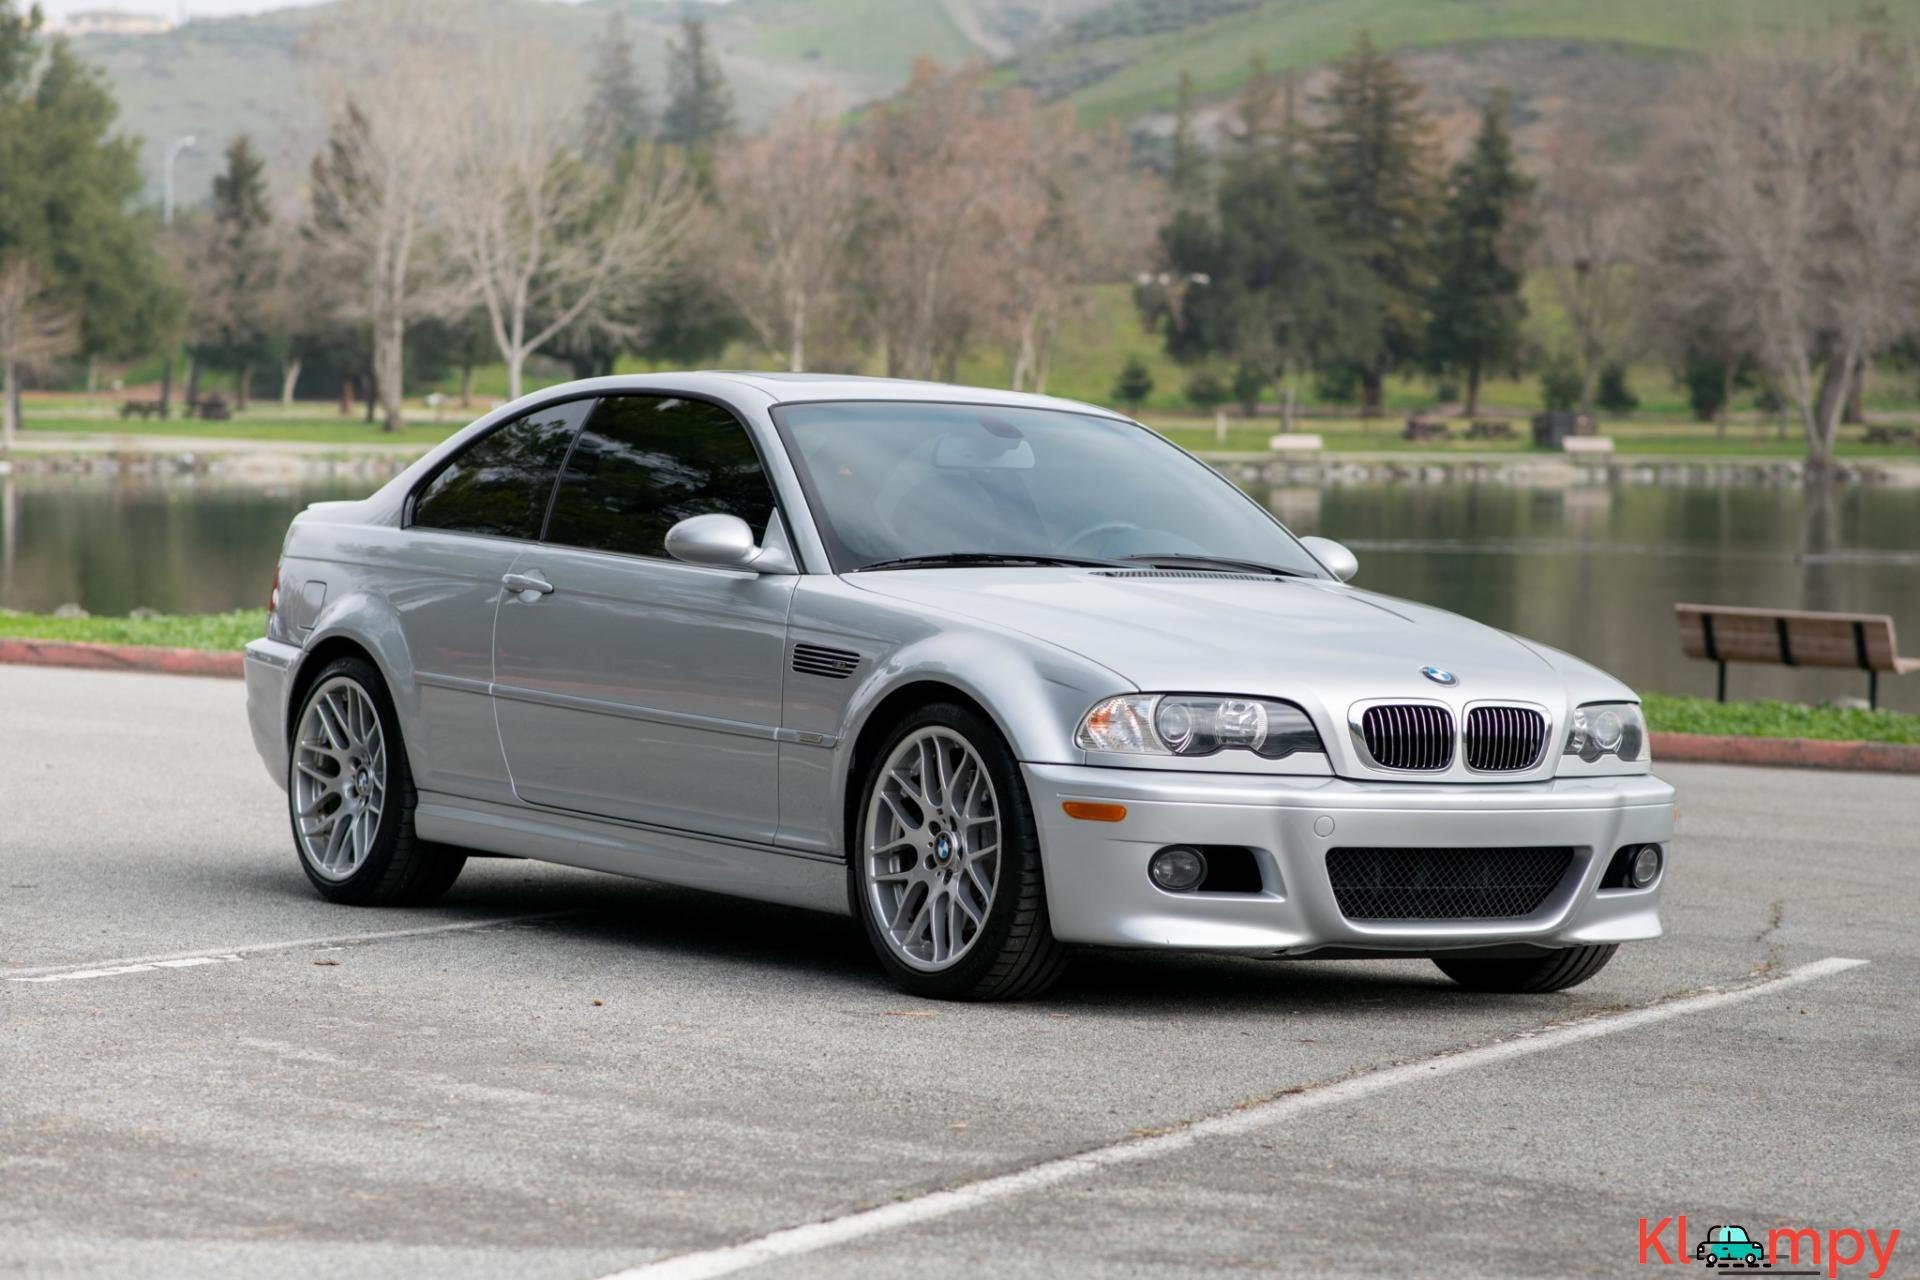 2006 BMW M3 Competition Package SMG - Kloompy